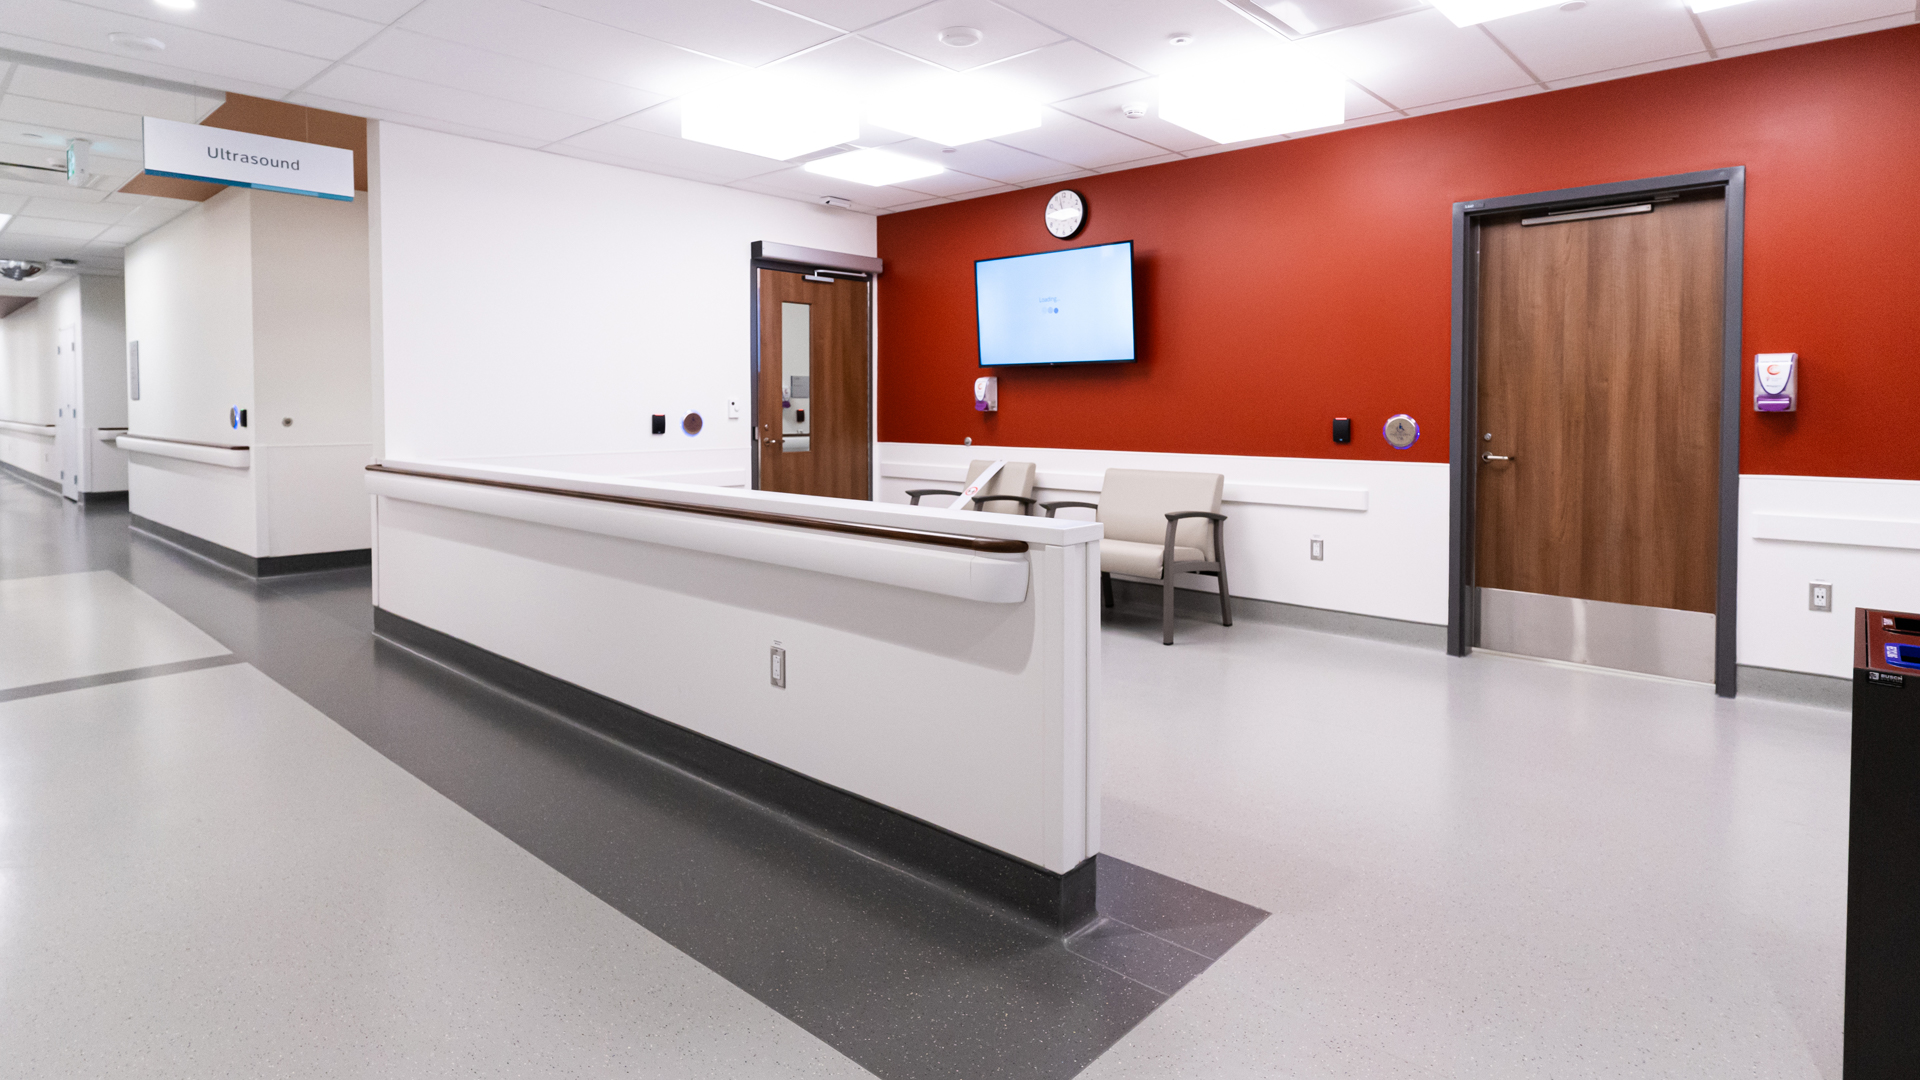 Ultrasound Outer Waiting Area